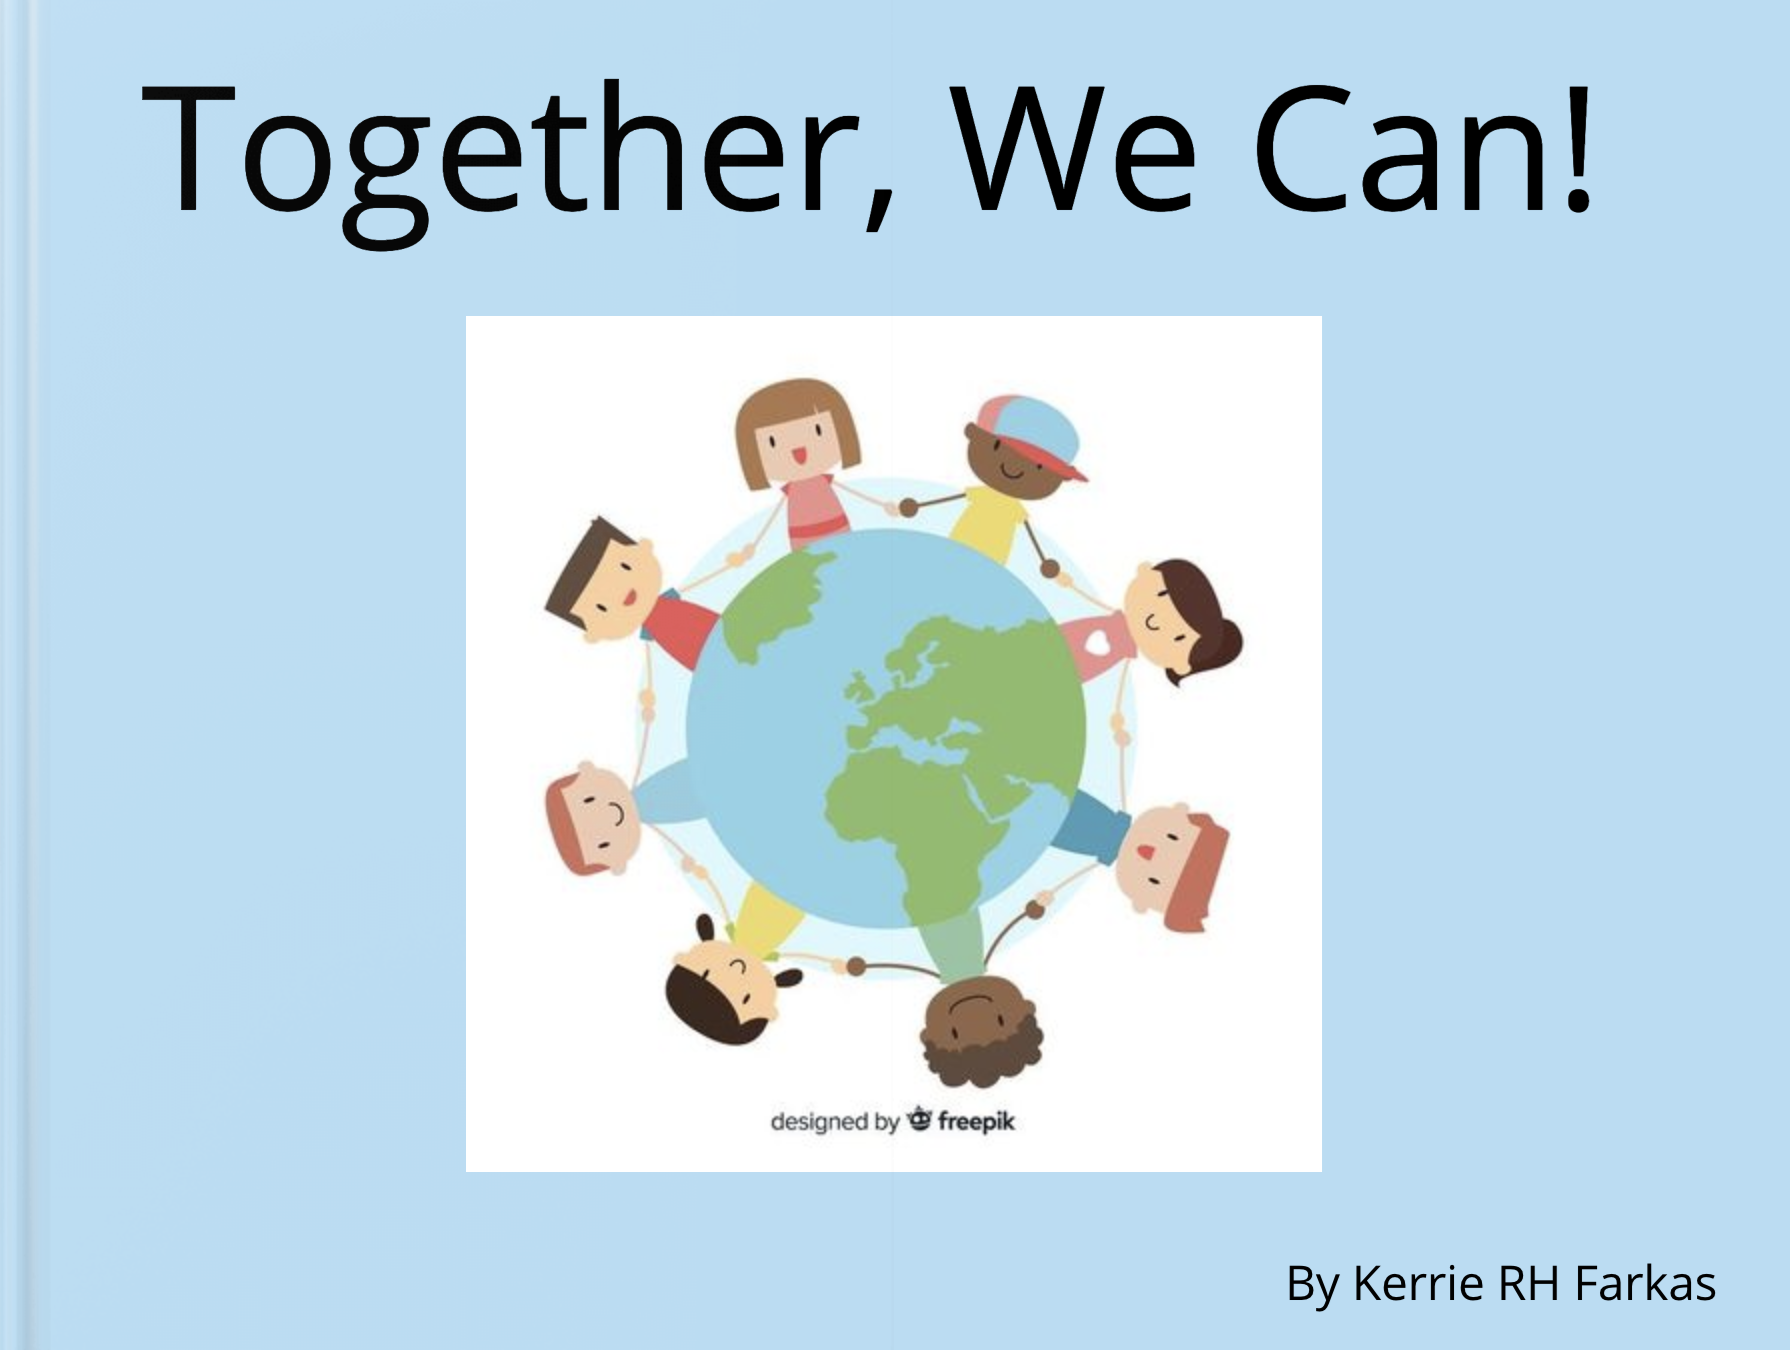 Together, We Can!